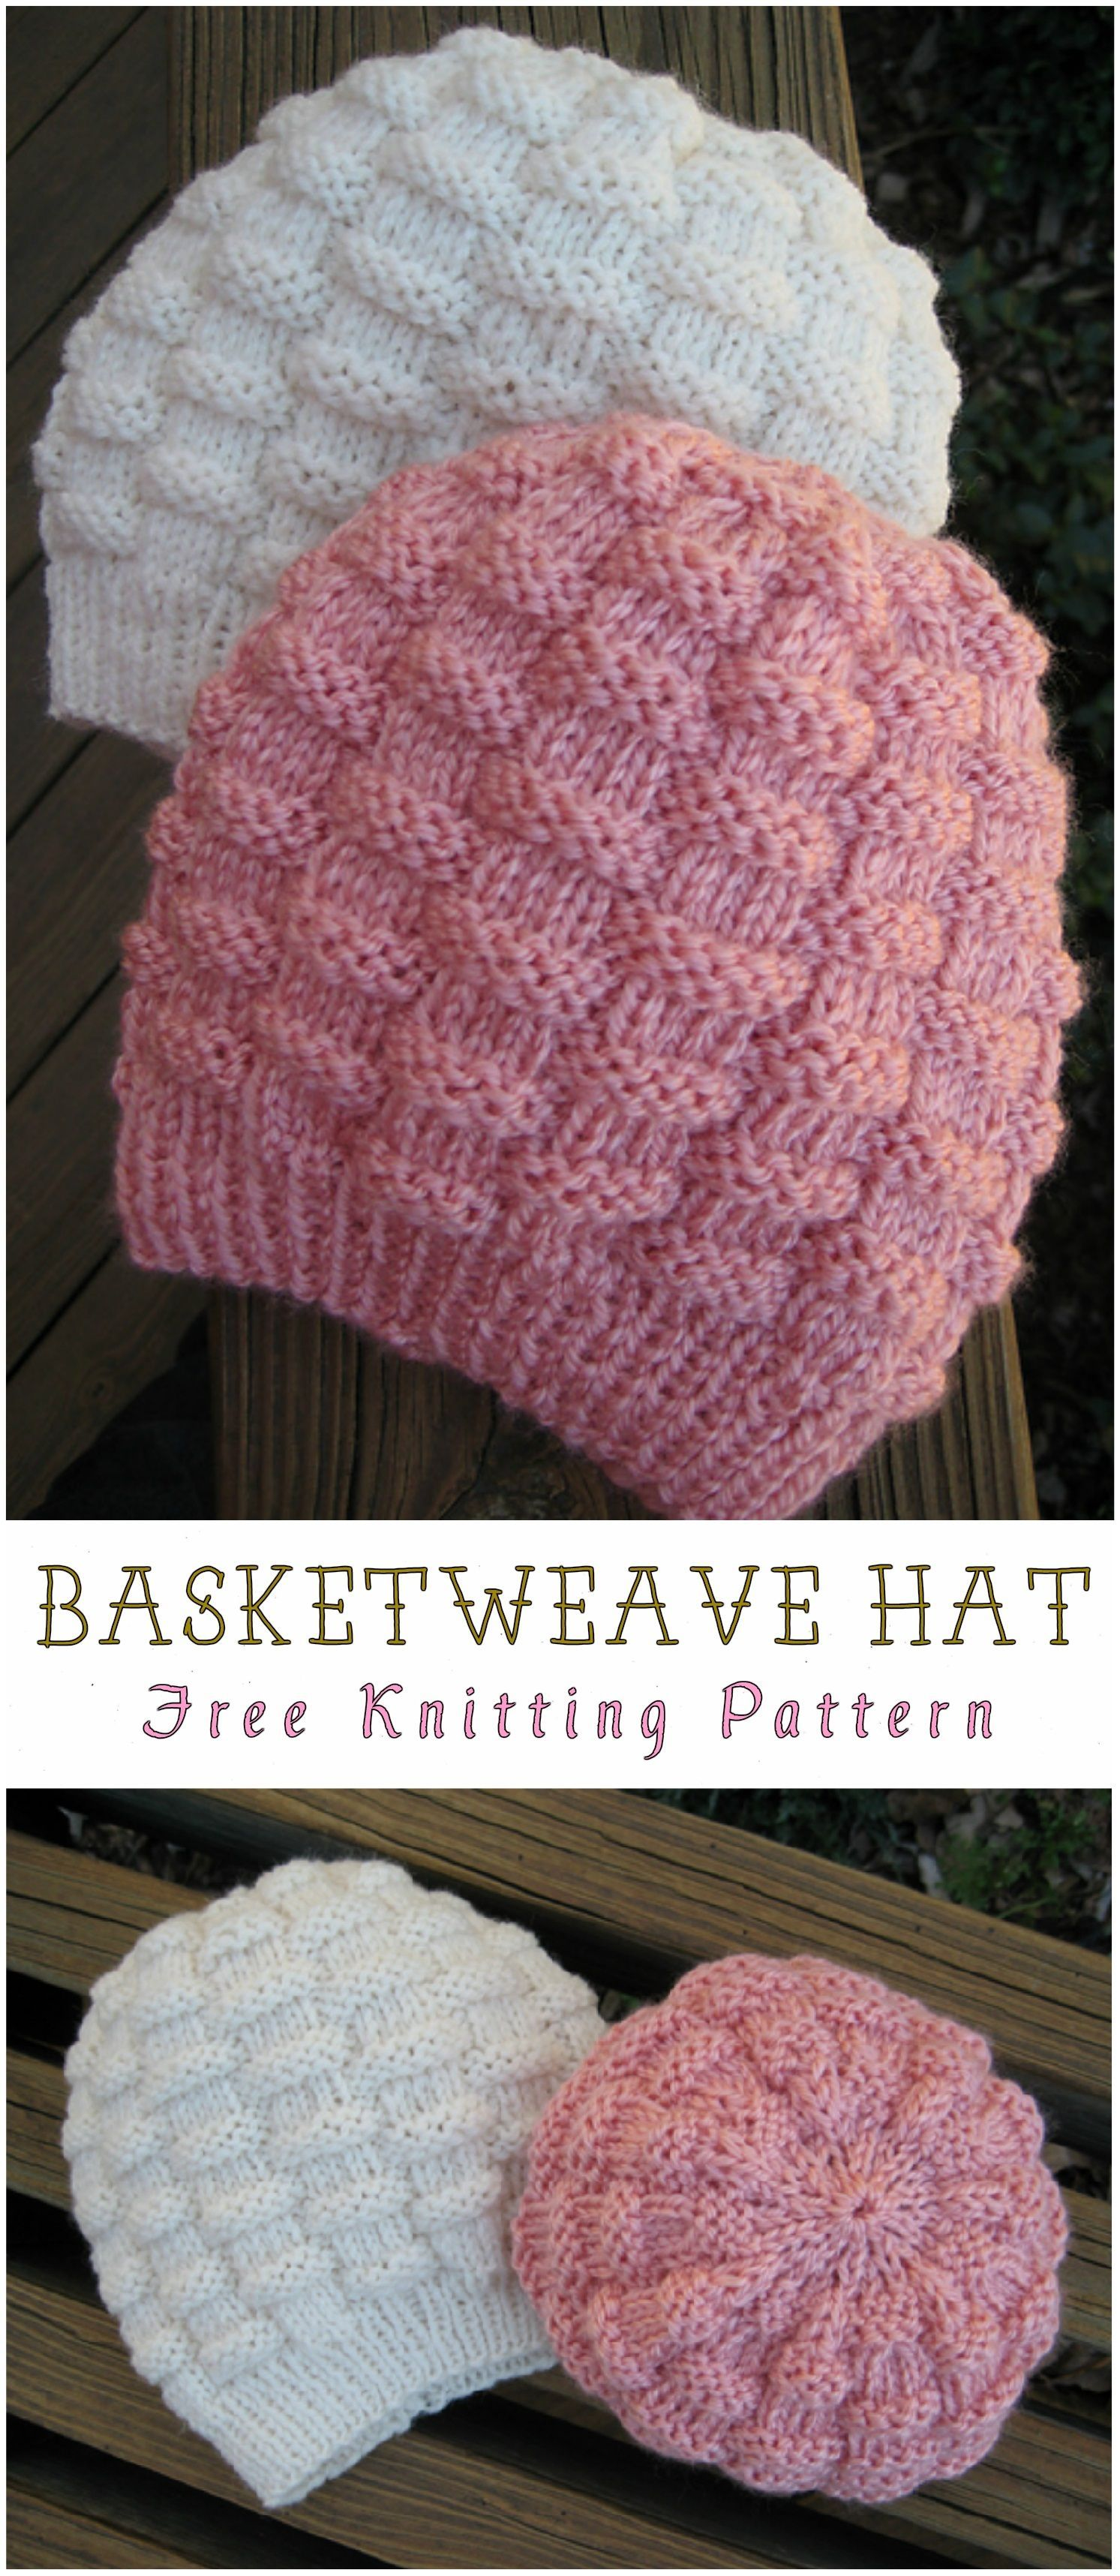 f4175429a7f Basketweave Hat Free Knitting Pattern